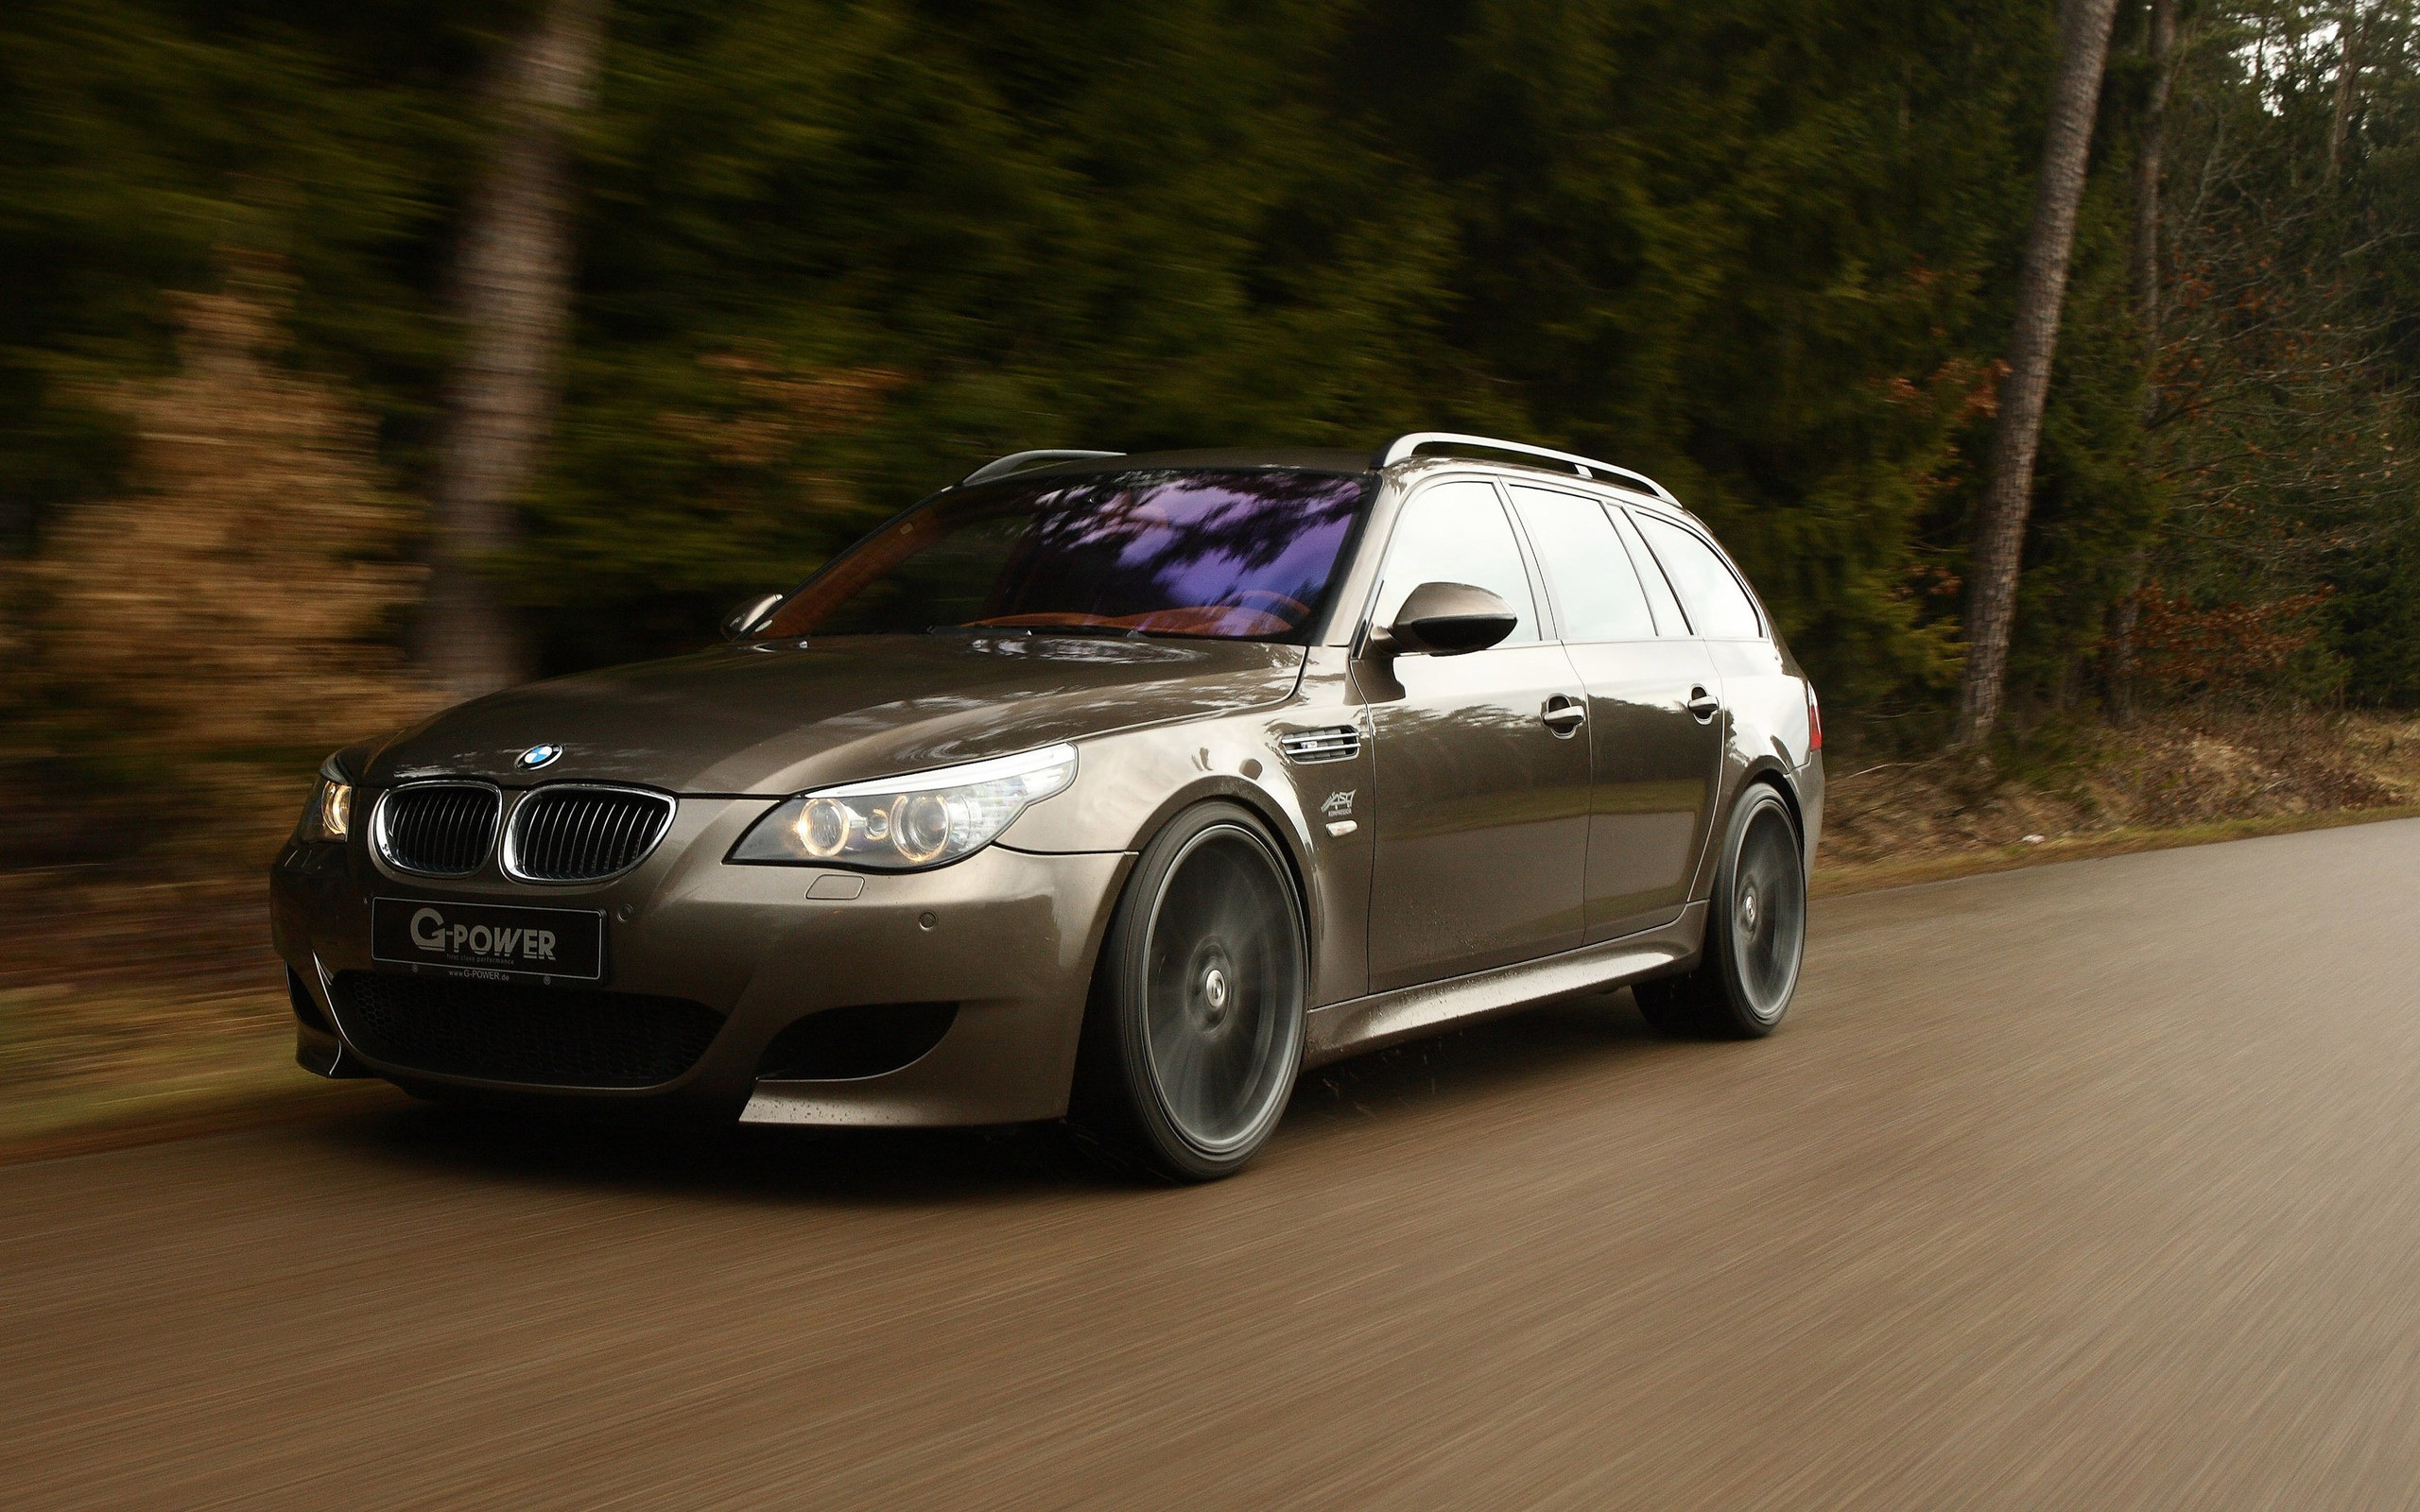 Wallpaper 3840x1080 Car Bmw E61 Wallpapers Hd Desktop And Mobile Backgrounds